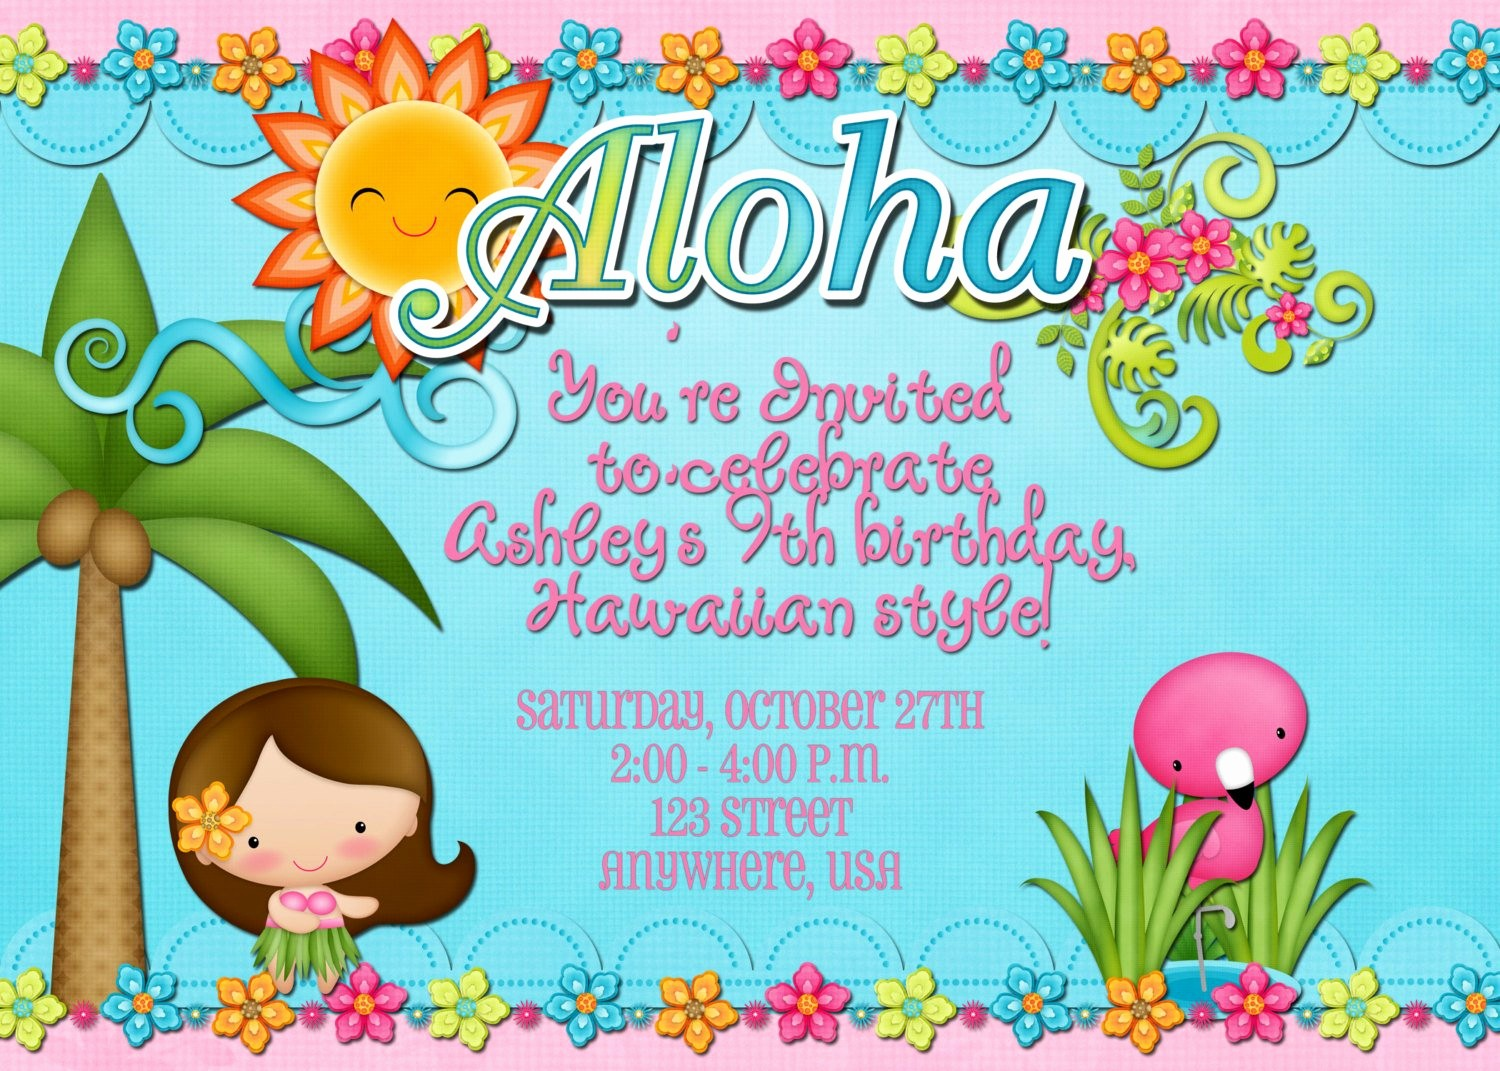 Luau Party Invitations Templates Free Beautiful Hawaiian Luau Birthday Party Invitation